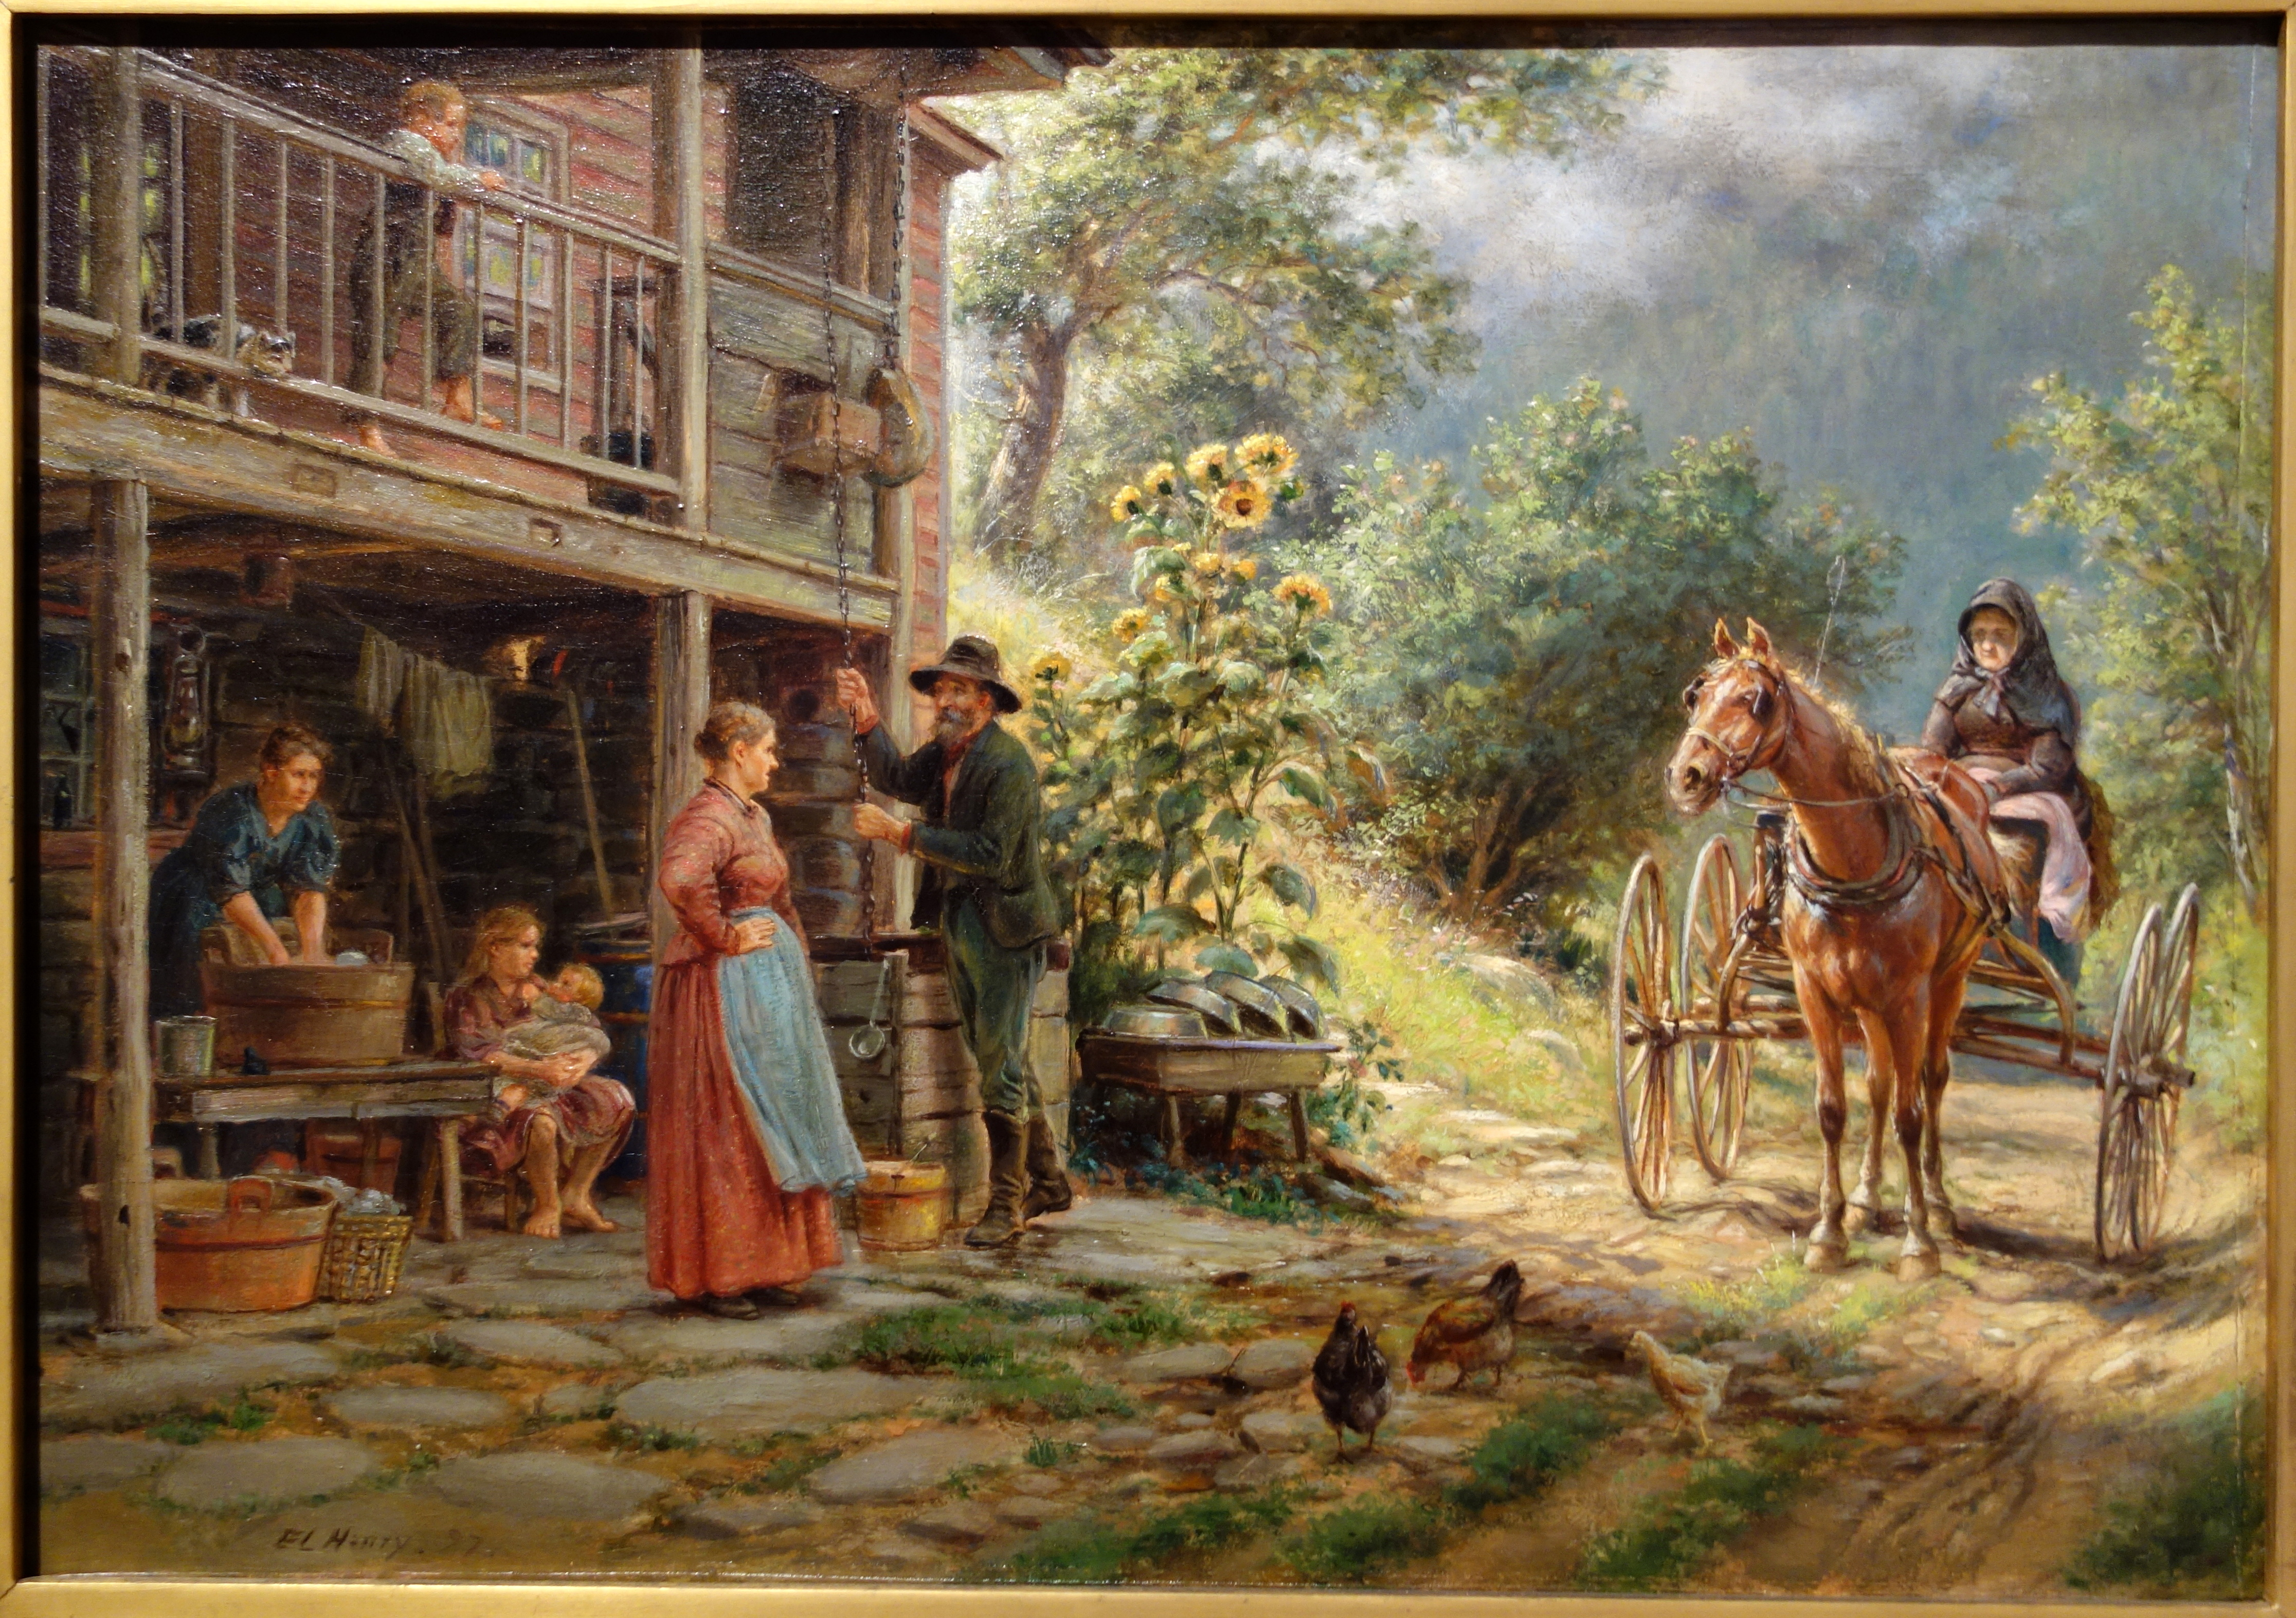 Off The Main Road By Edward Lamson Henry 1897 Oil On Canvas New Britain Museum Of American Art Dsc09404 Jpg 4465 3147 Tablolar